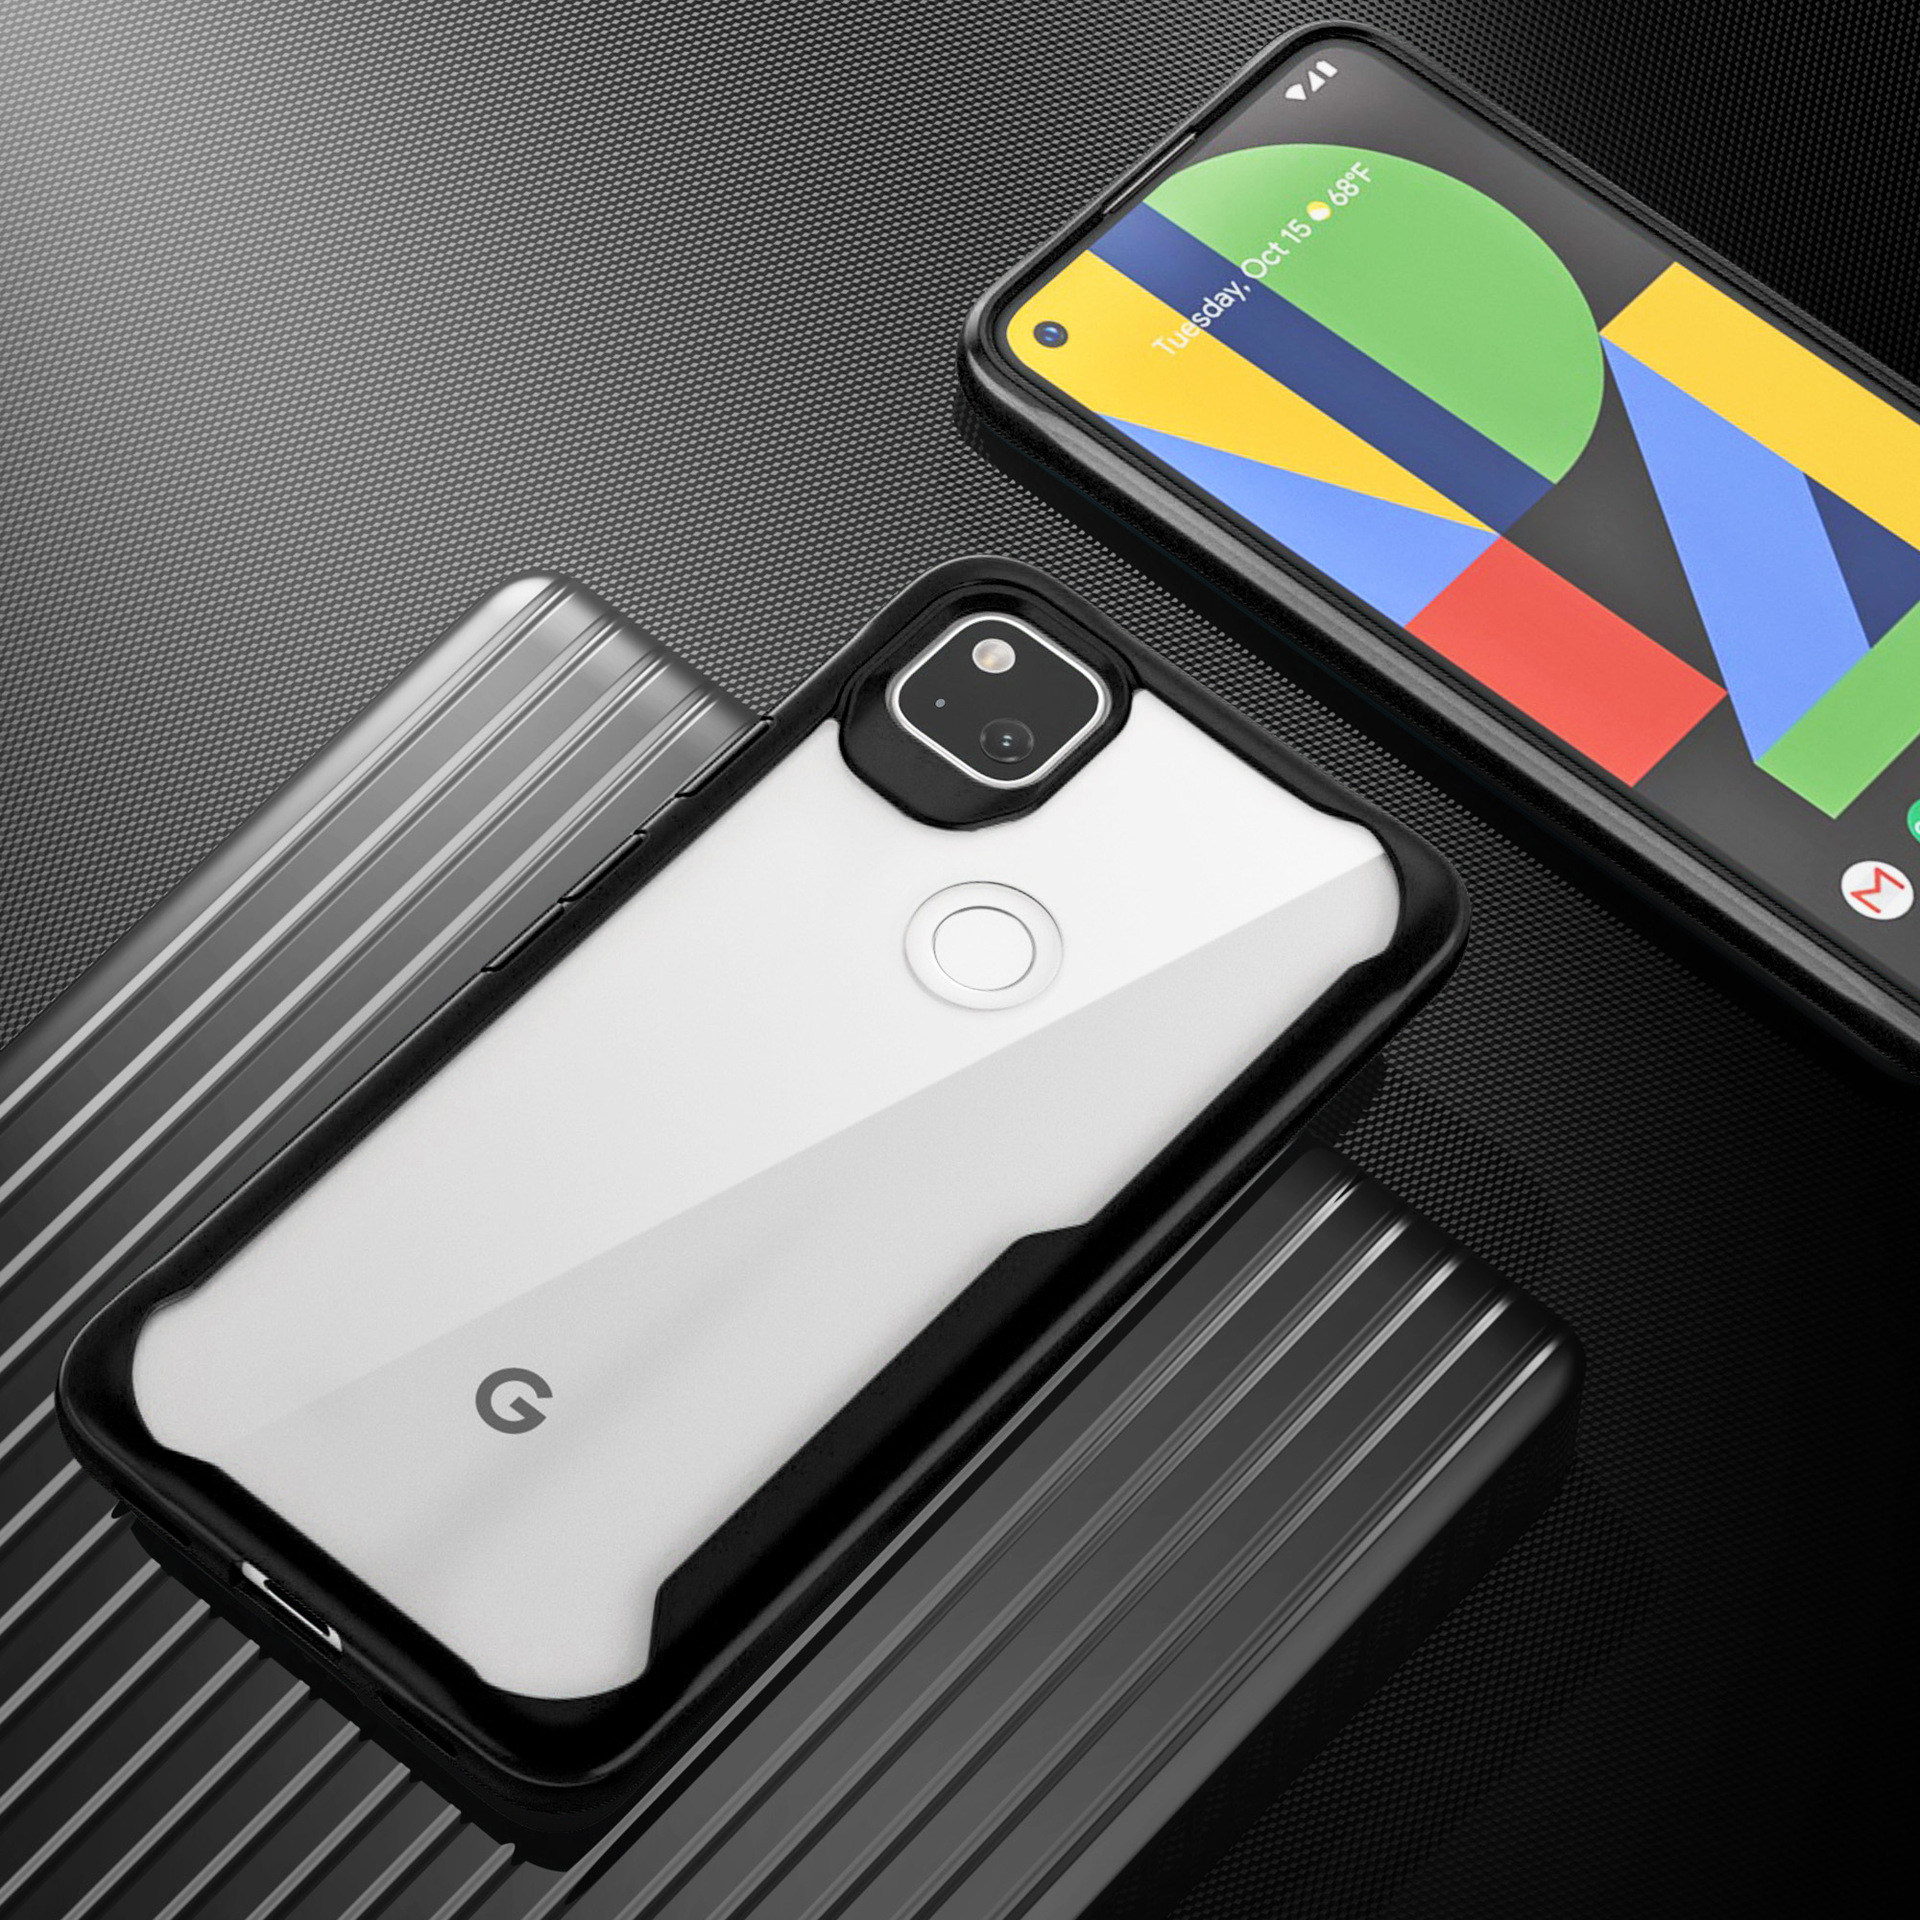 For Goolgle Pixel 5 5Xl 4A 4 4XL 3A 3XL 2 Transparent 2 In 1 Ultrathin Fall Prevention Mobile Phone Case For Pixel 5 5XL